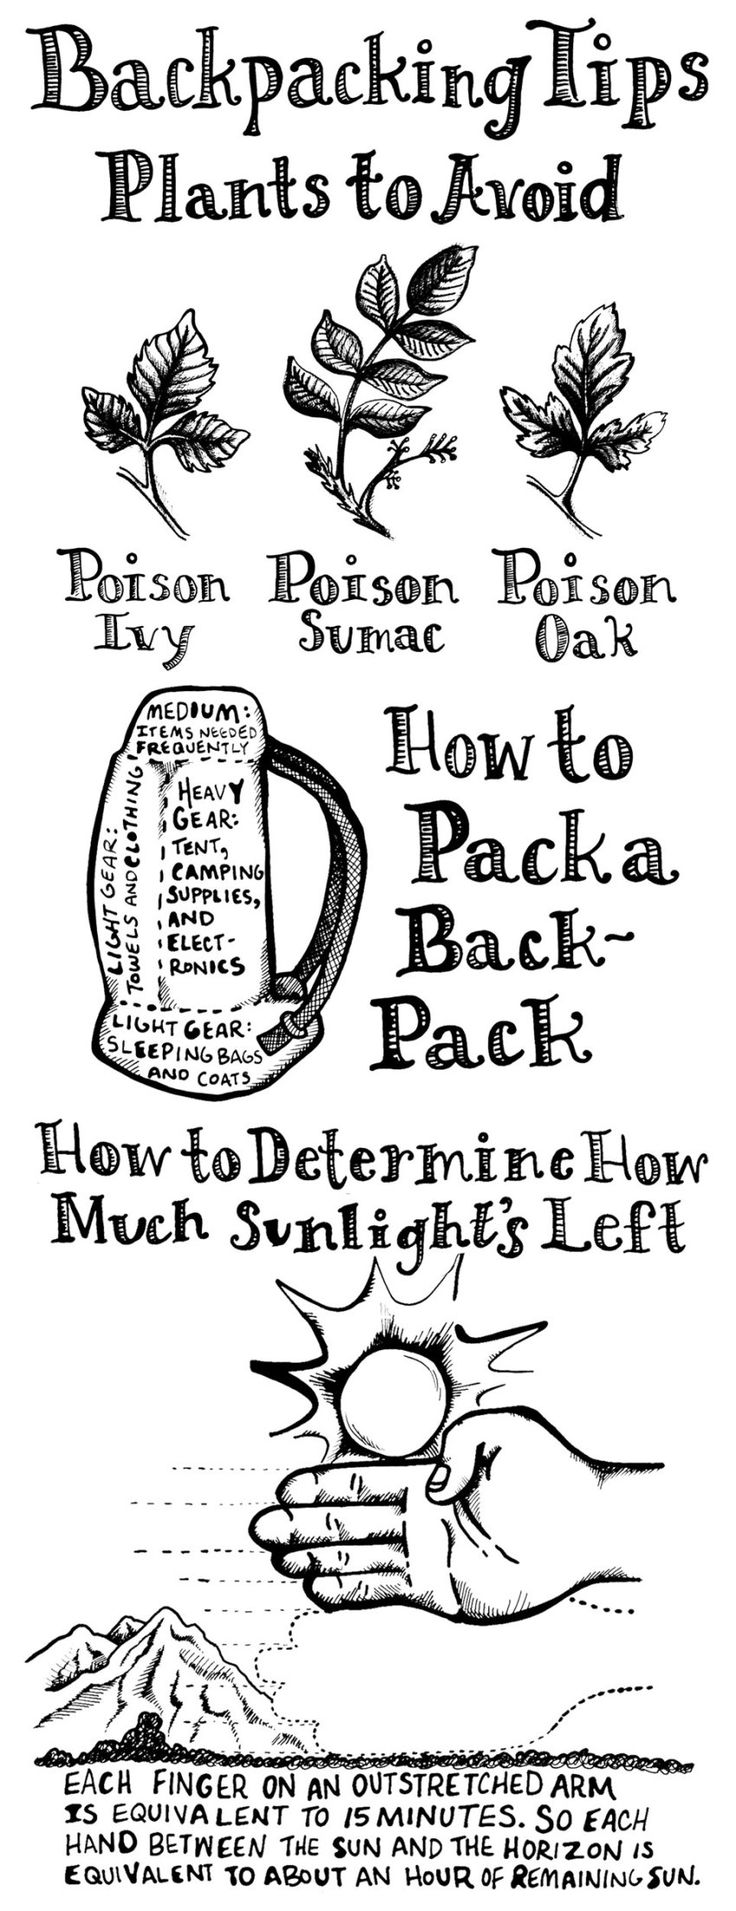 Essential backpacking tips! Avoid poisonous plants and learn how to judge how much daylight you have left without tools.